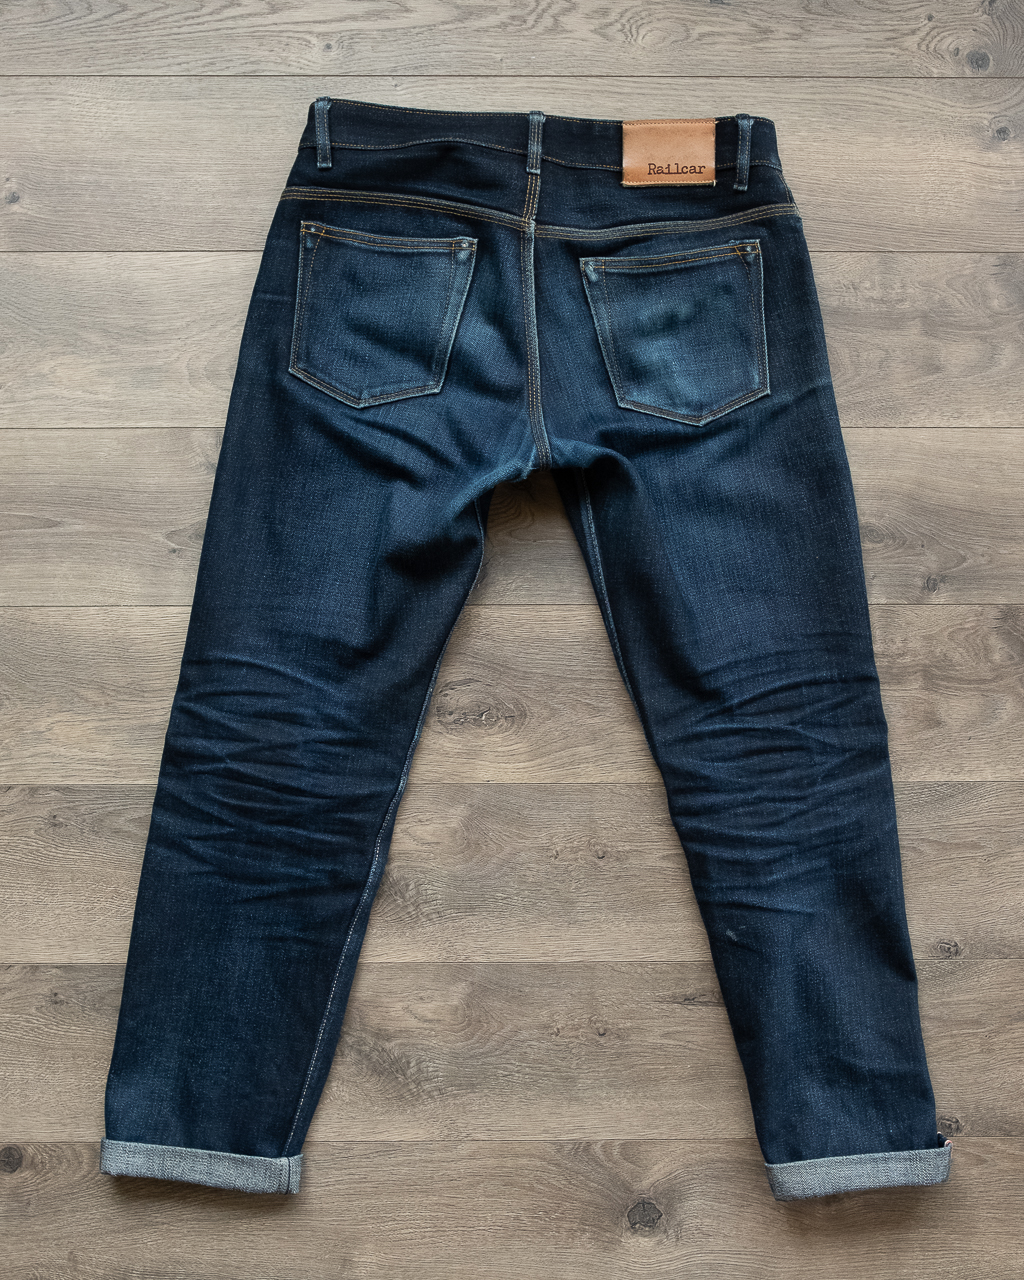 railcar x034 denim full back faded